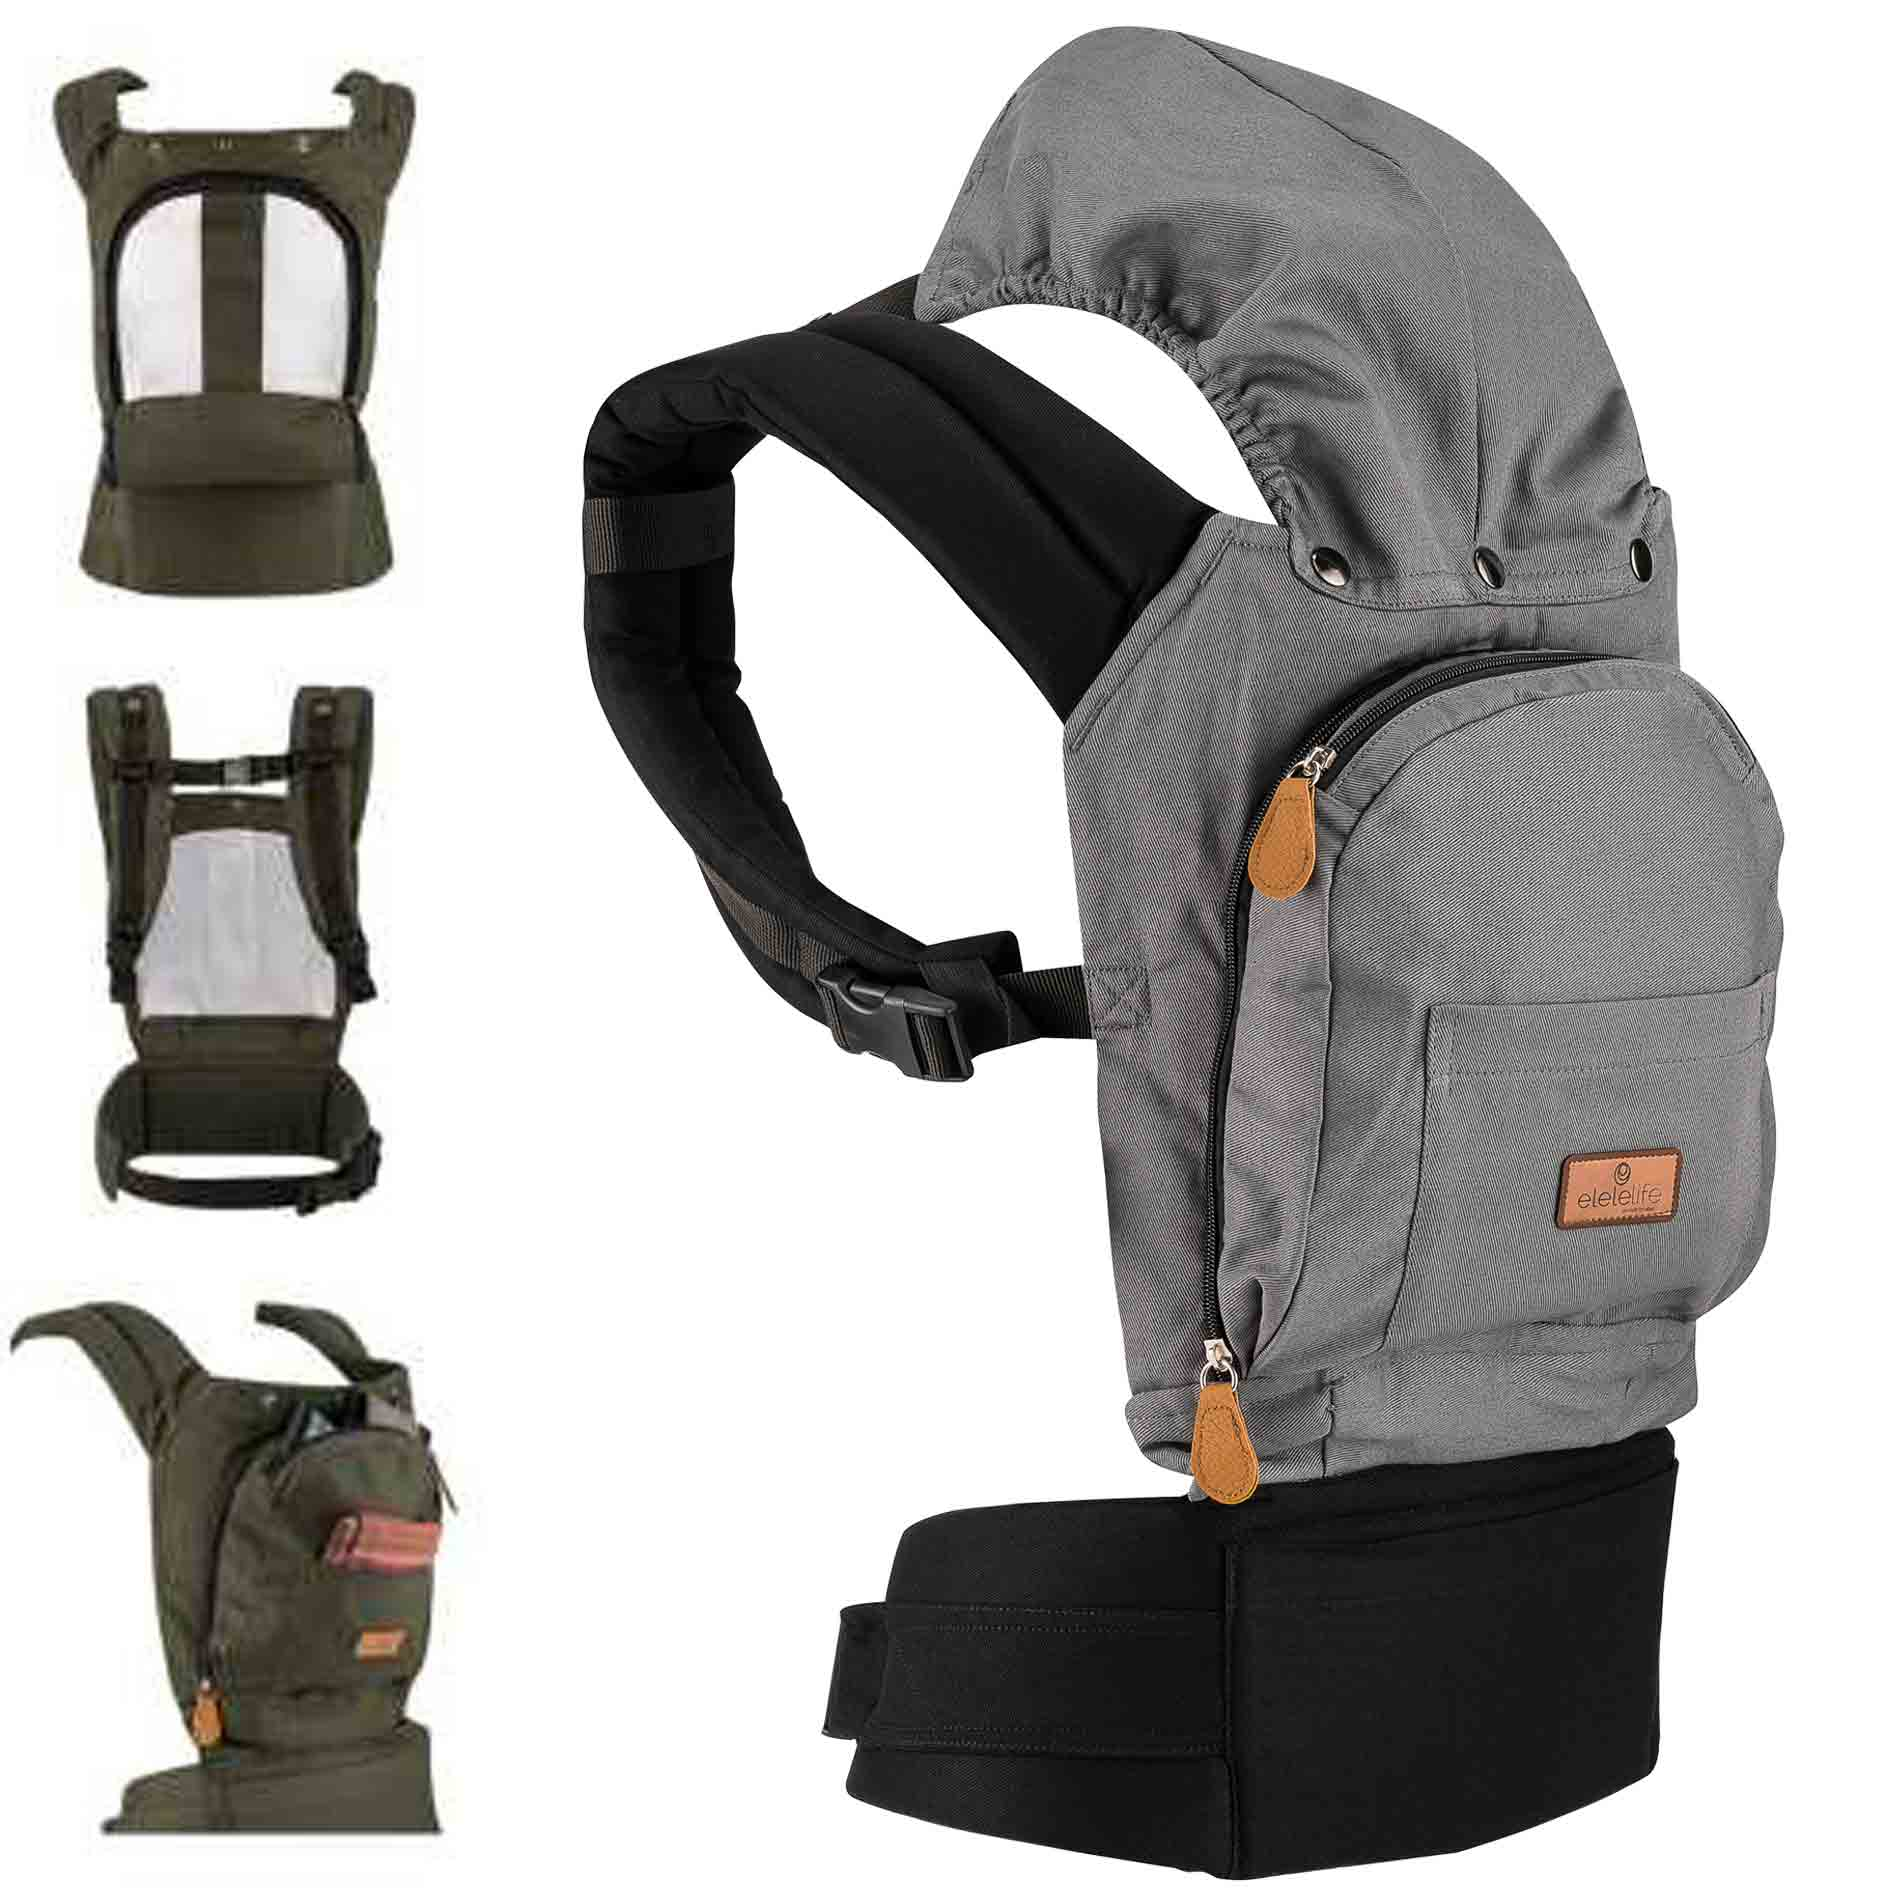 Ergonomic Kangaroo Gray Mommy Bag Easy Portable Compatible Baby 100% Breathable Cotton Fabric High Quality Sturdy